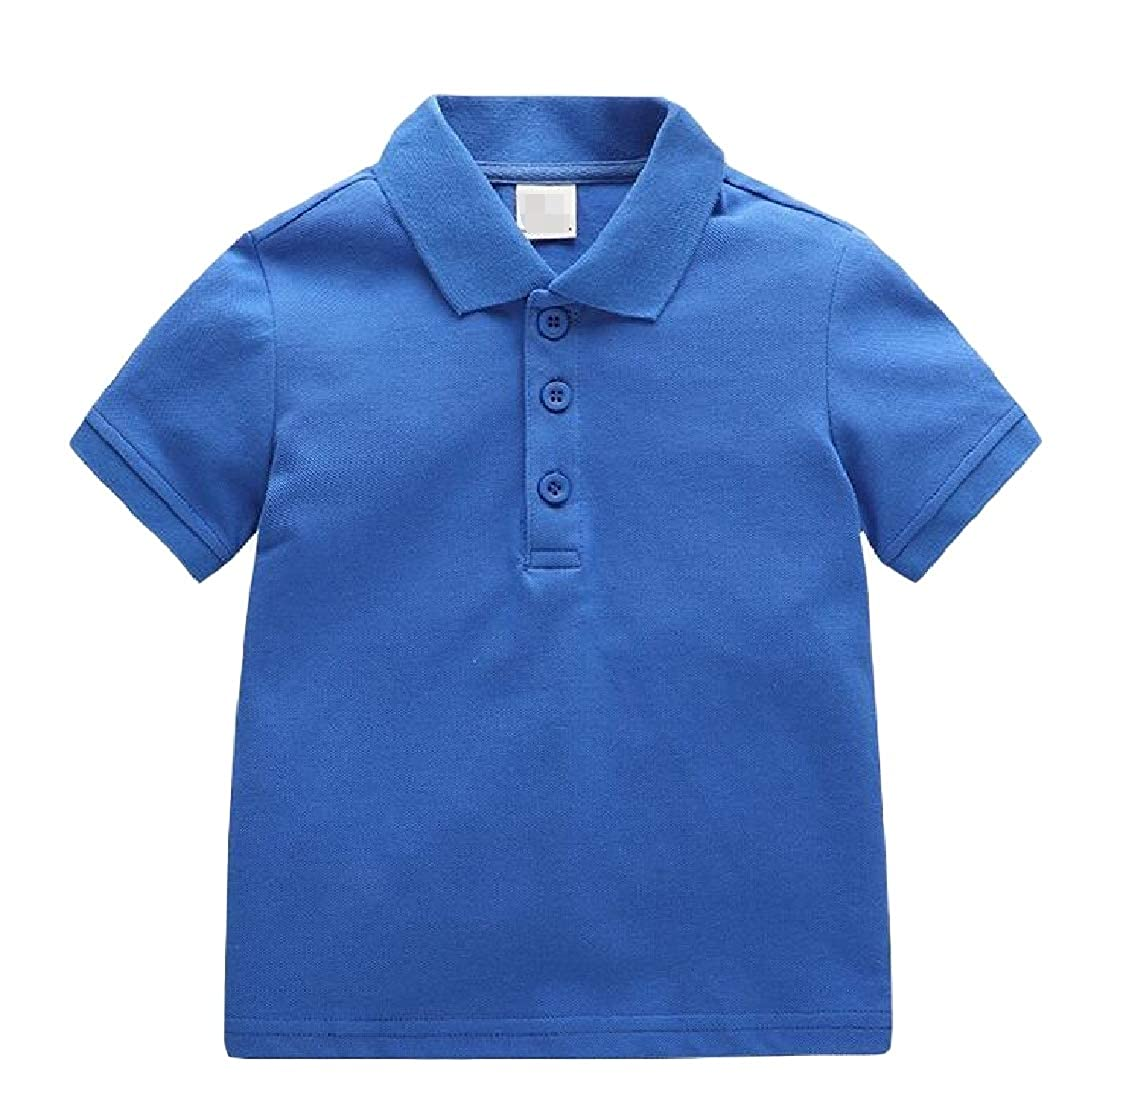 Lutratocro Boys Polos Short Sleeve Pure Color Pullover Lovely Lapel Shirts